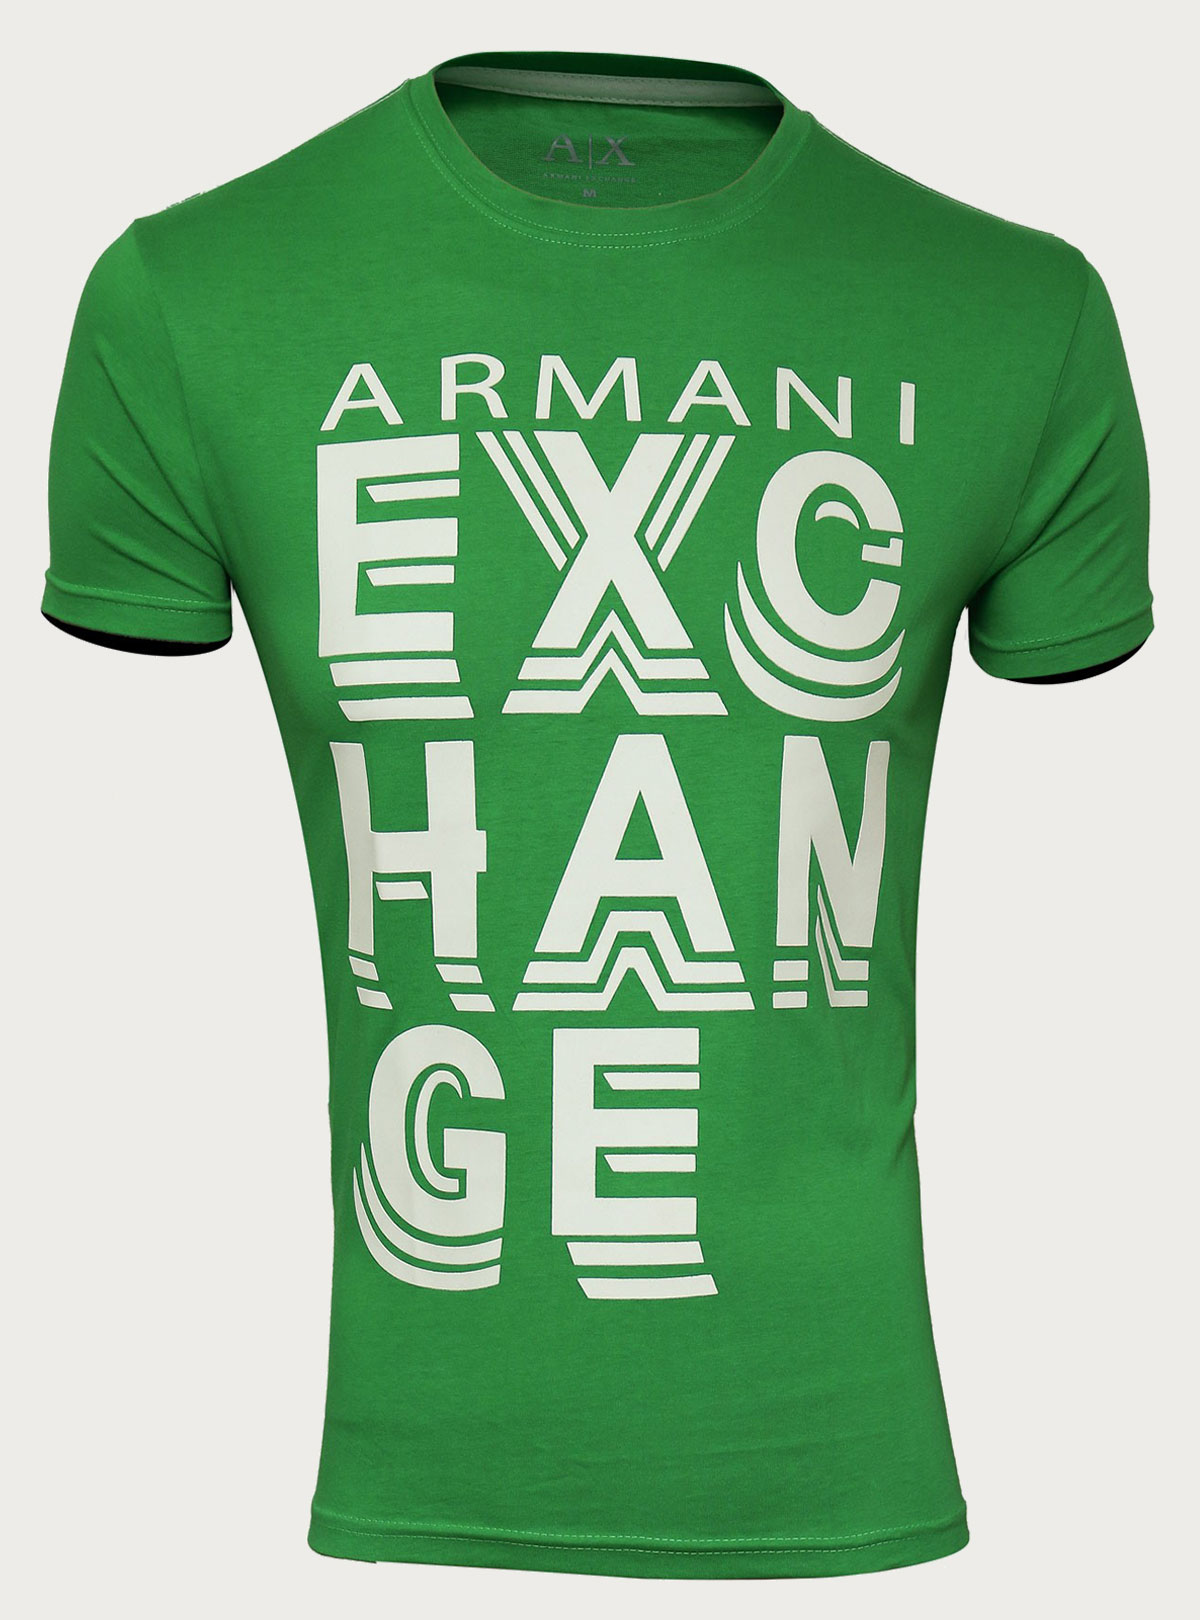 Round T-Shirt By - Armany Exchange